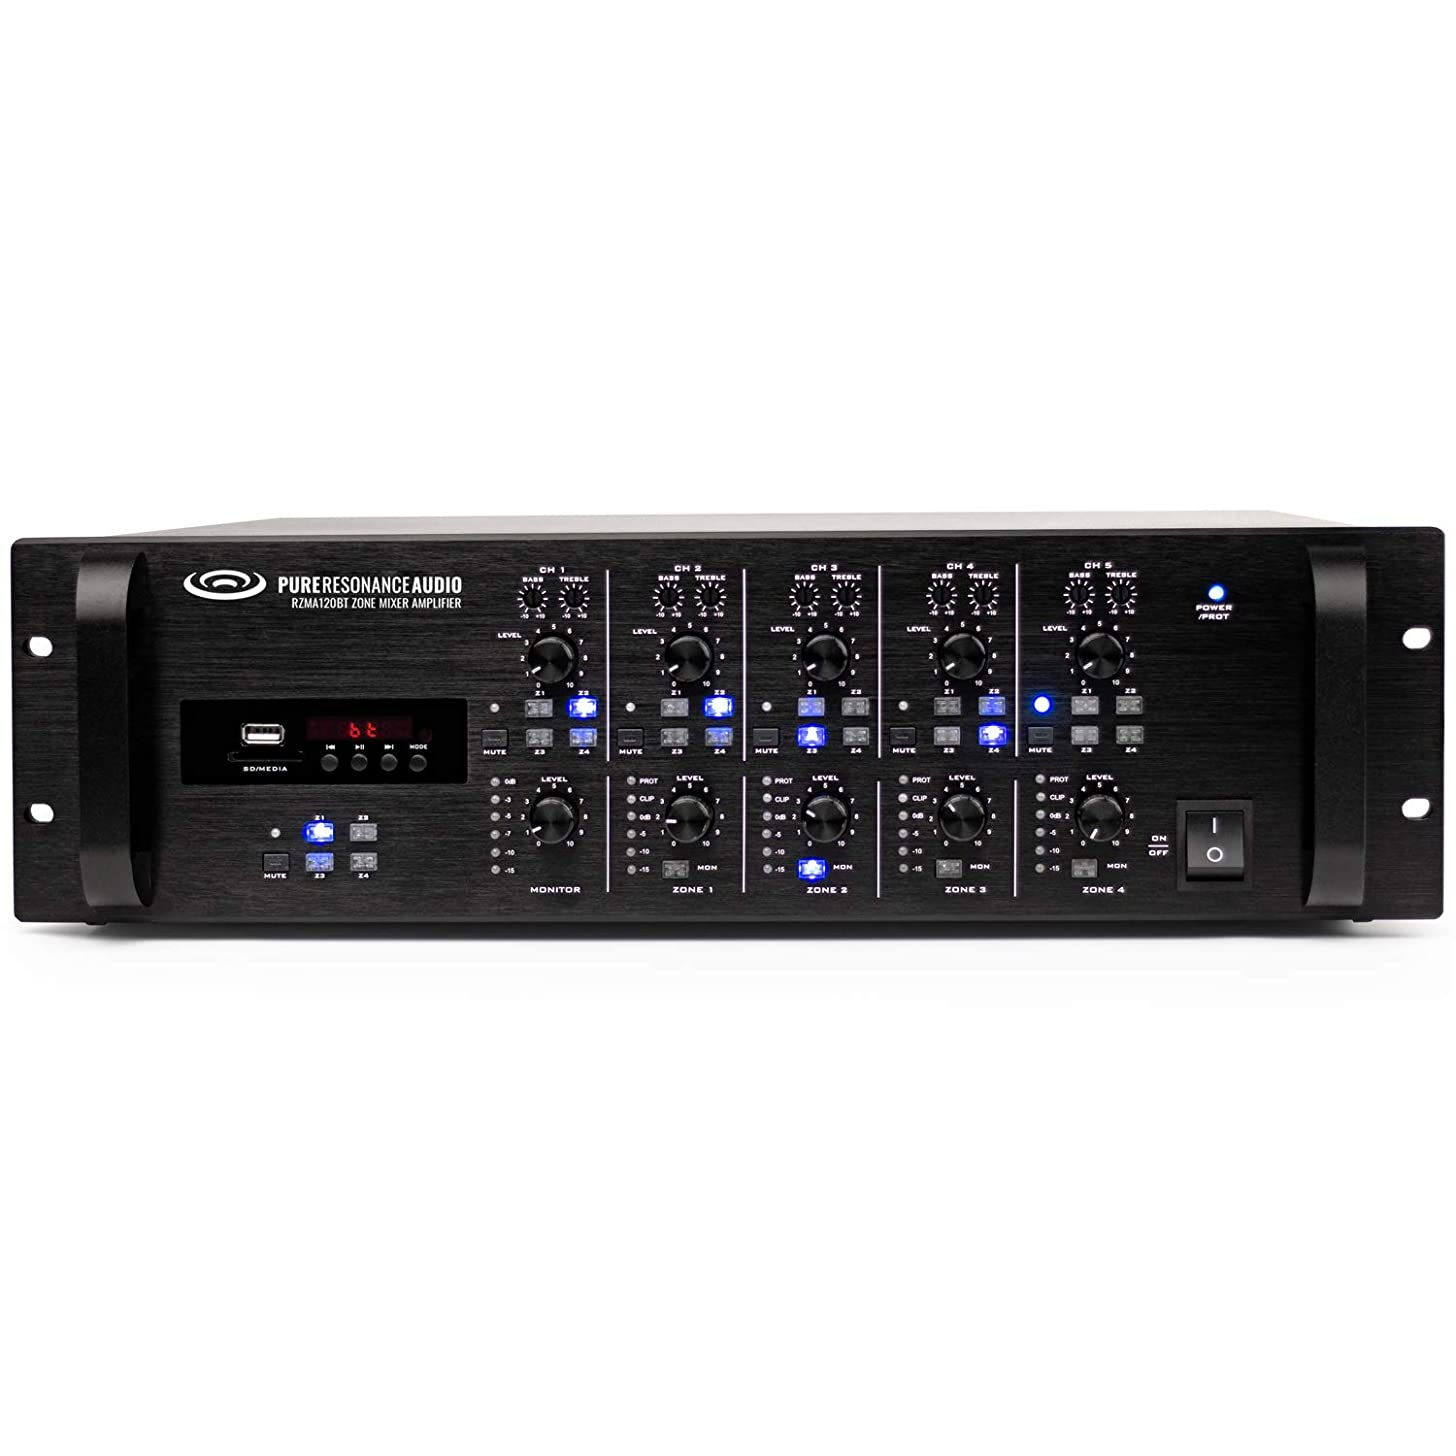 Pure Resonance Audio RZMA120BT 4 Zone 120W Commercial Rack Mount Mixer Amplifier with 4 x 120 Watts 4 Ohm, 70V/100V and Bluetooth